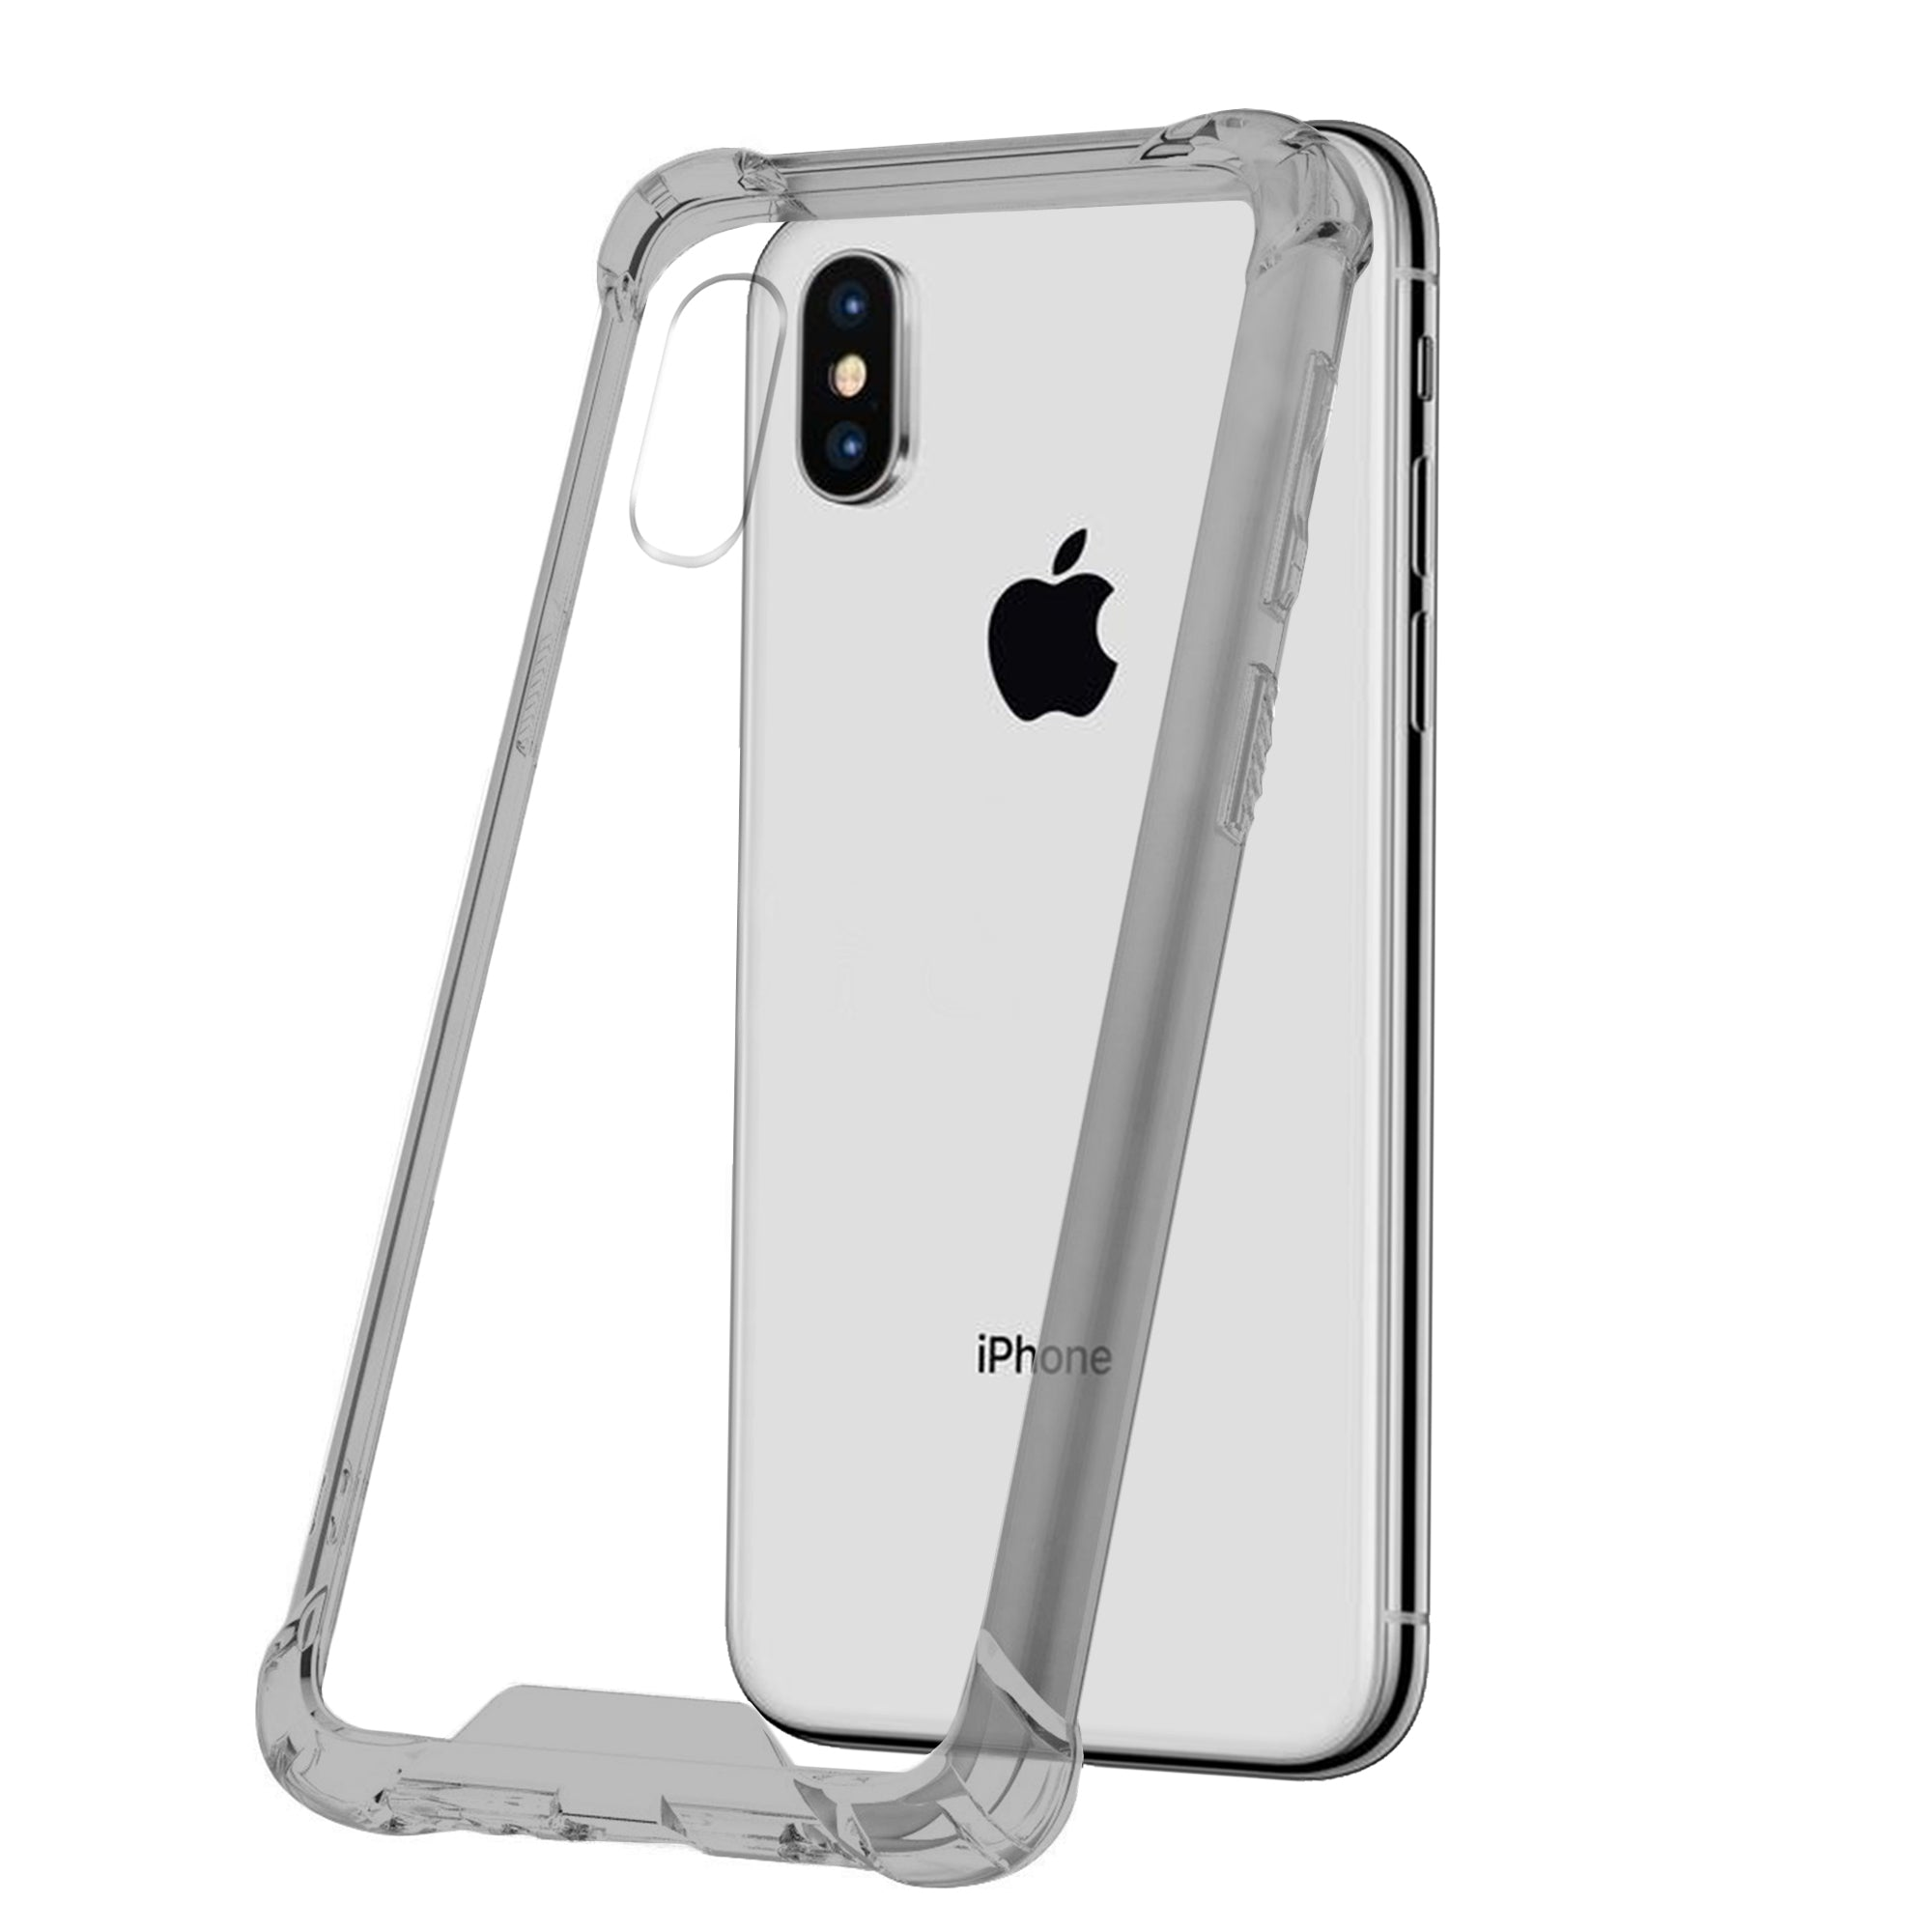 For-Apple-iPhone-Xs-Max-iPhone-Xs-Max-Black-TPU-Bumper-Case-Floral-Designs thumbnail 3